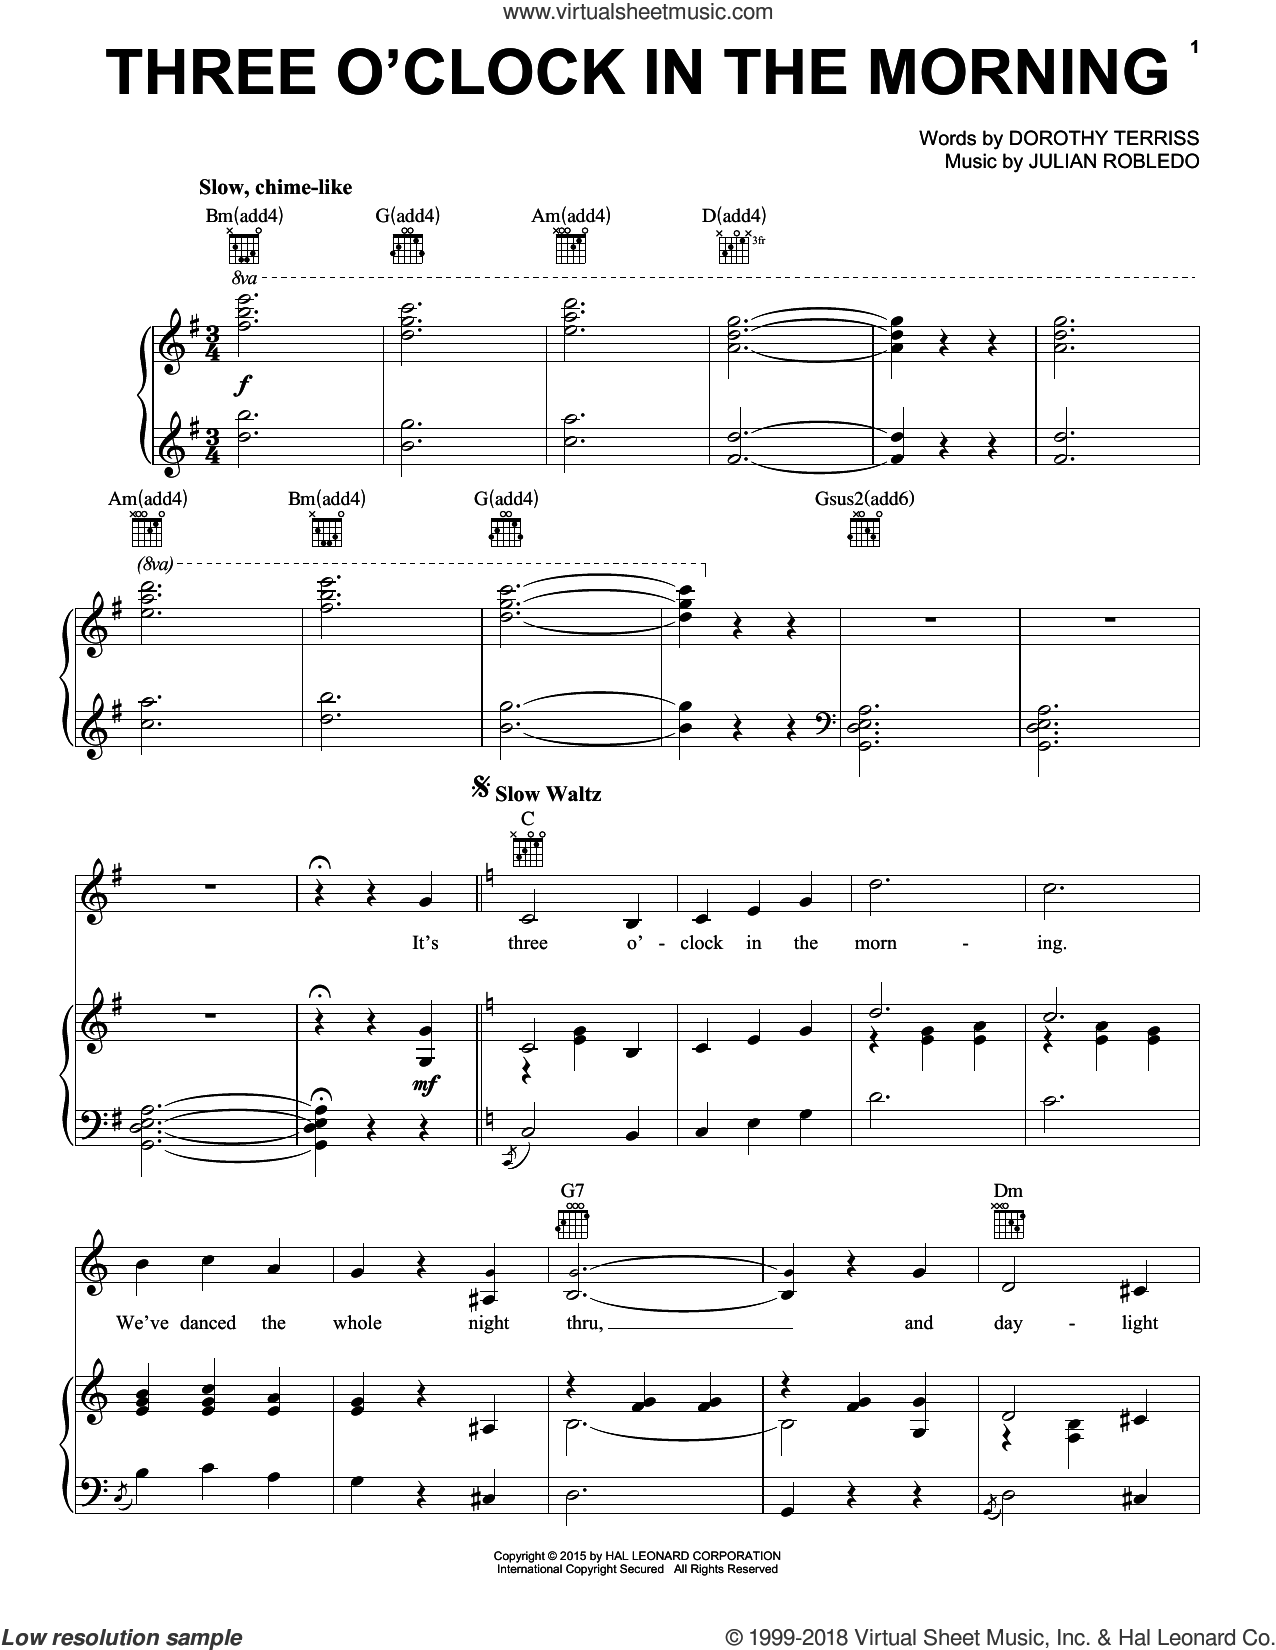 Three O'Clock In The Morning sheet music for voice, piano or guitar by Julian Robledo and Dorothy Terriss. Score Image Preview.